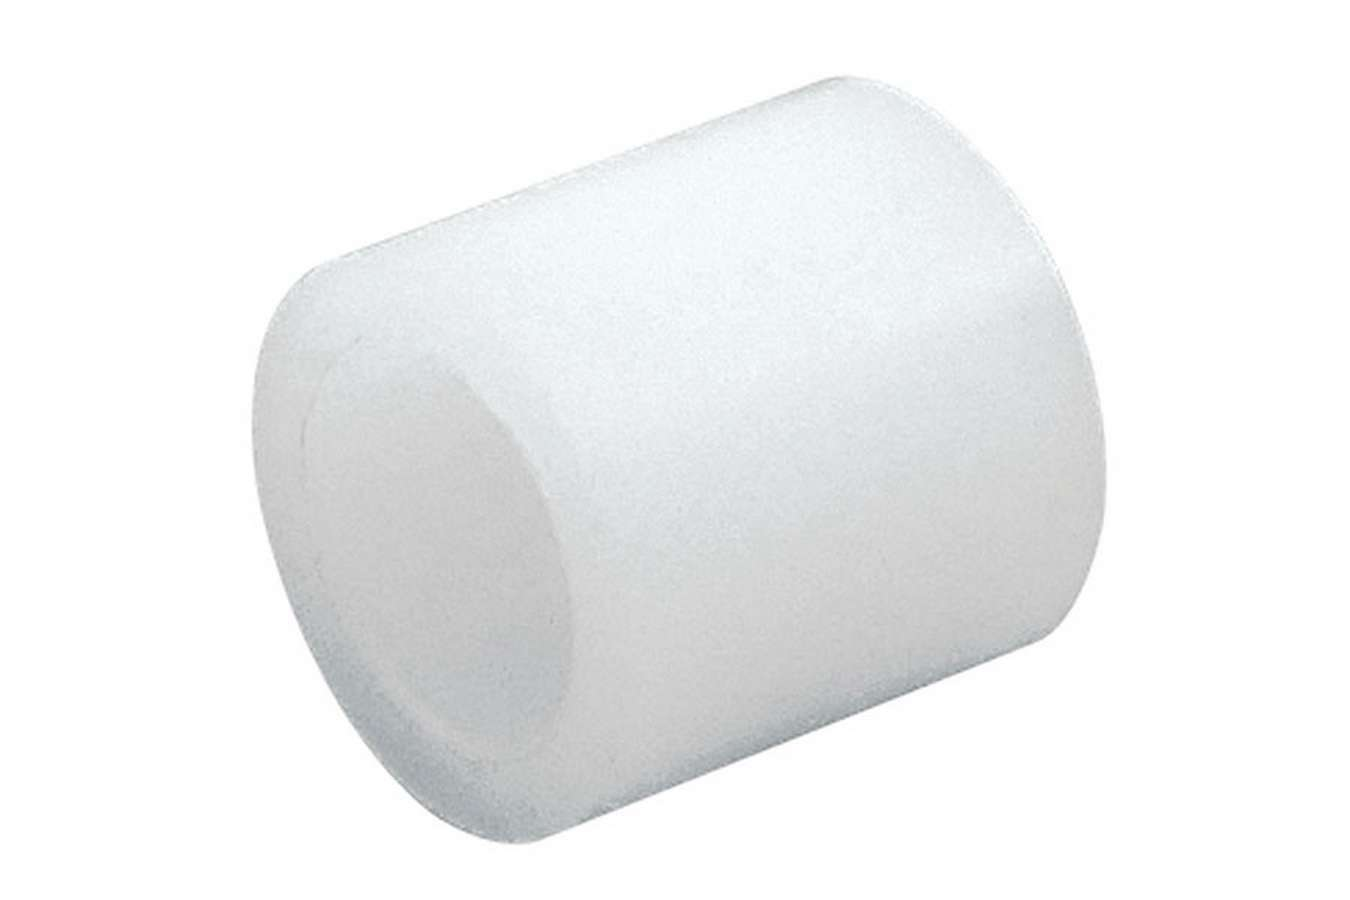 Allstar Performance 99015 Reducer Bushing, 3/8 in OD to 1/4 in ID, Nylon, White, Allstar Shifters, Each